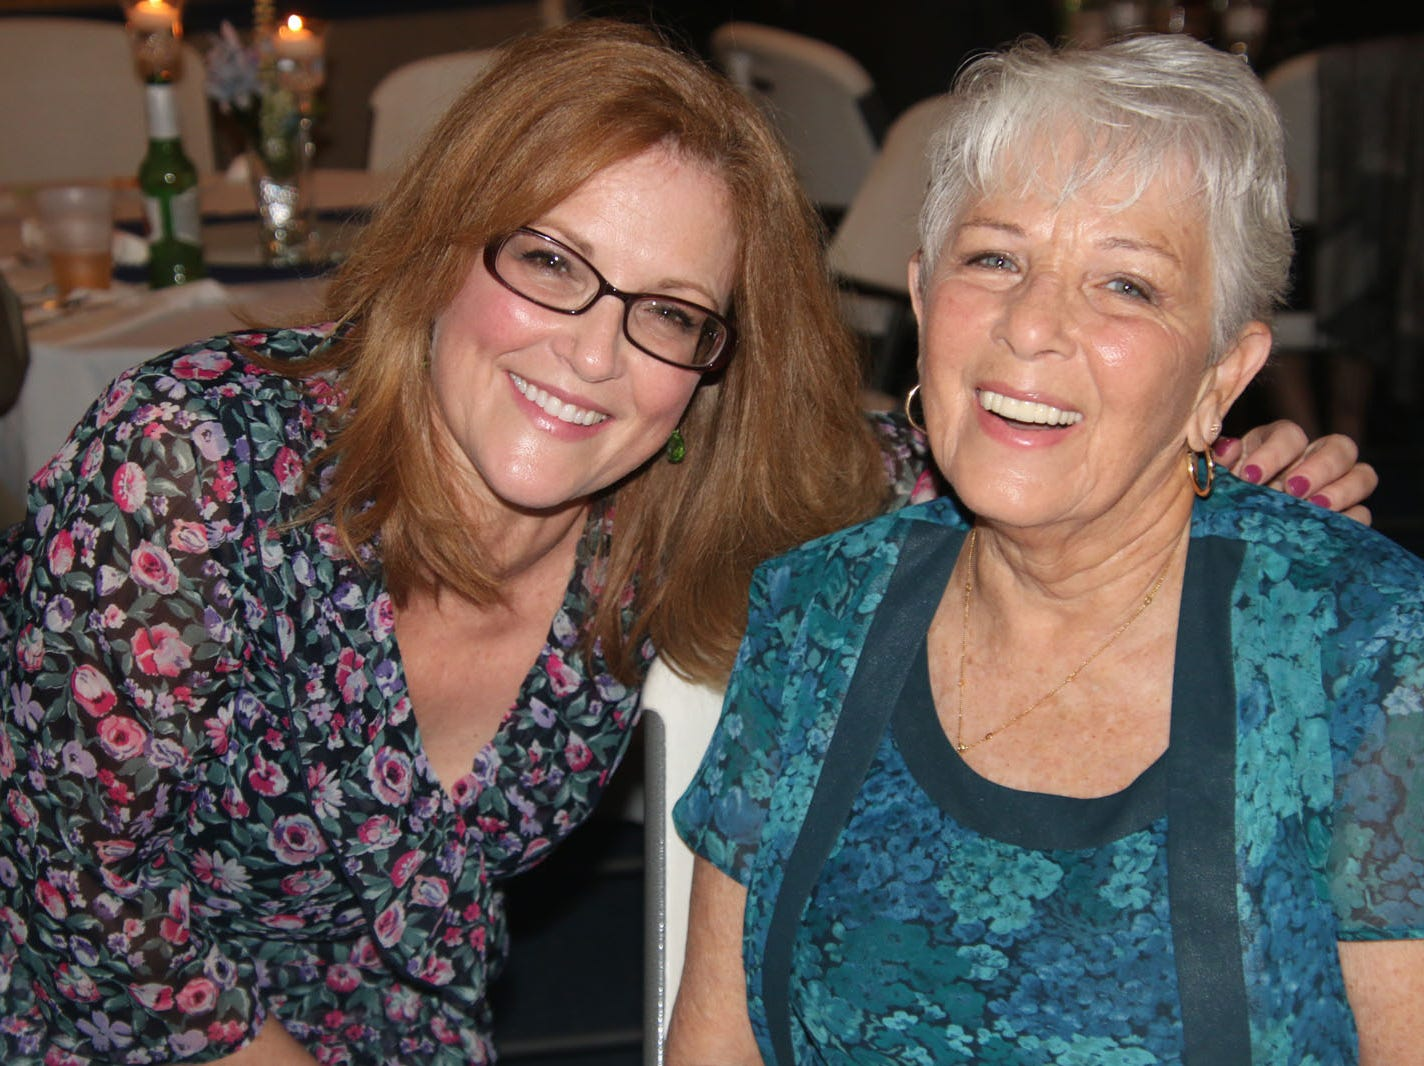 Jane and Gwen Omans at the Dollars for Scholars fundraiser at the Fort Pierce Yacht Club on Jan. 27.